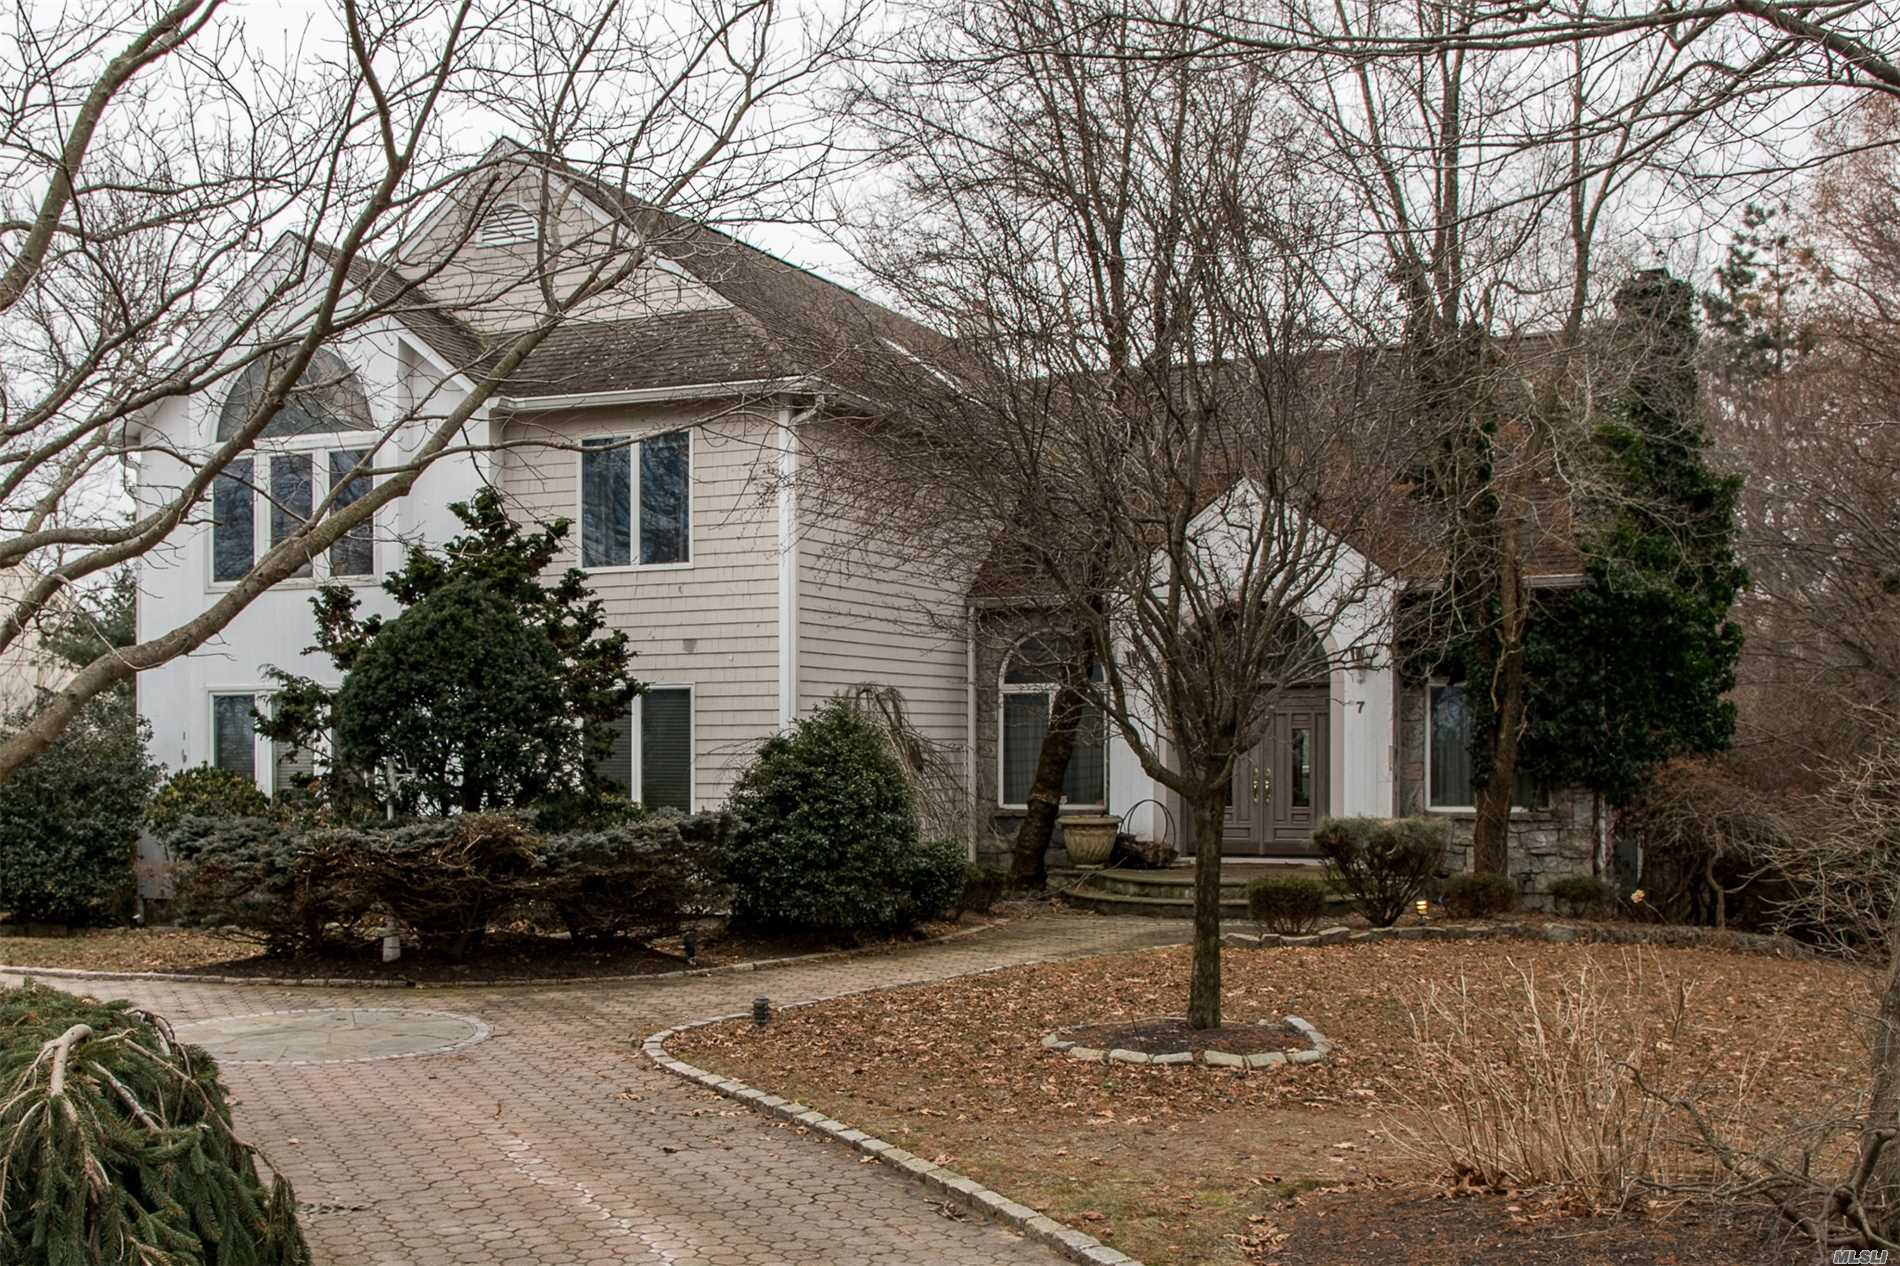 Spectacular Post Modern W/Views Of Li Sound In A Private Beach Community. Features 4/5 Large Bdrs, 4.5 Baths, Hwd, Ceramic, Hi-Hats, Fieldstone Frpl, Cvac, Full Above Ground Walk-Out Basement W/Rm For Mom, 3-Car Heated Garage, Ig Pool, Slate Porch, Waterfalls, Pond, Igs, Fenced Property, Awning, Alarm, Intercom, & So Much More!